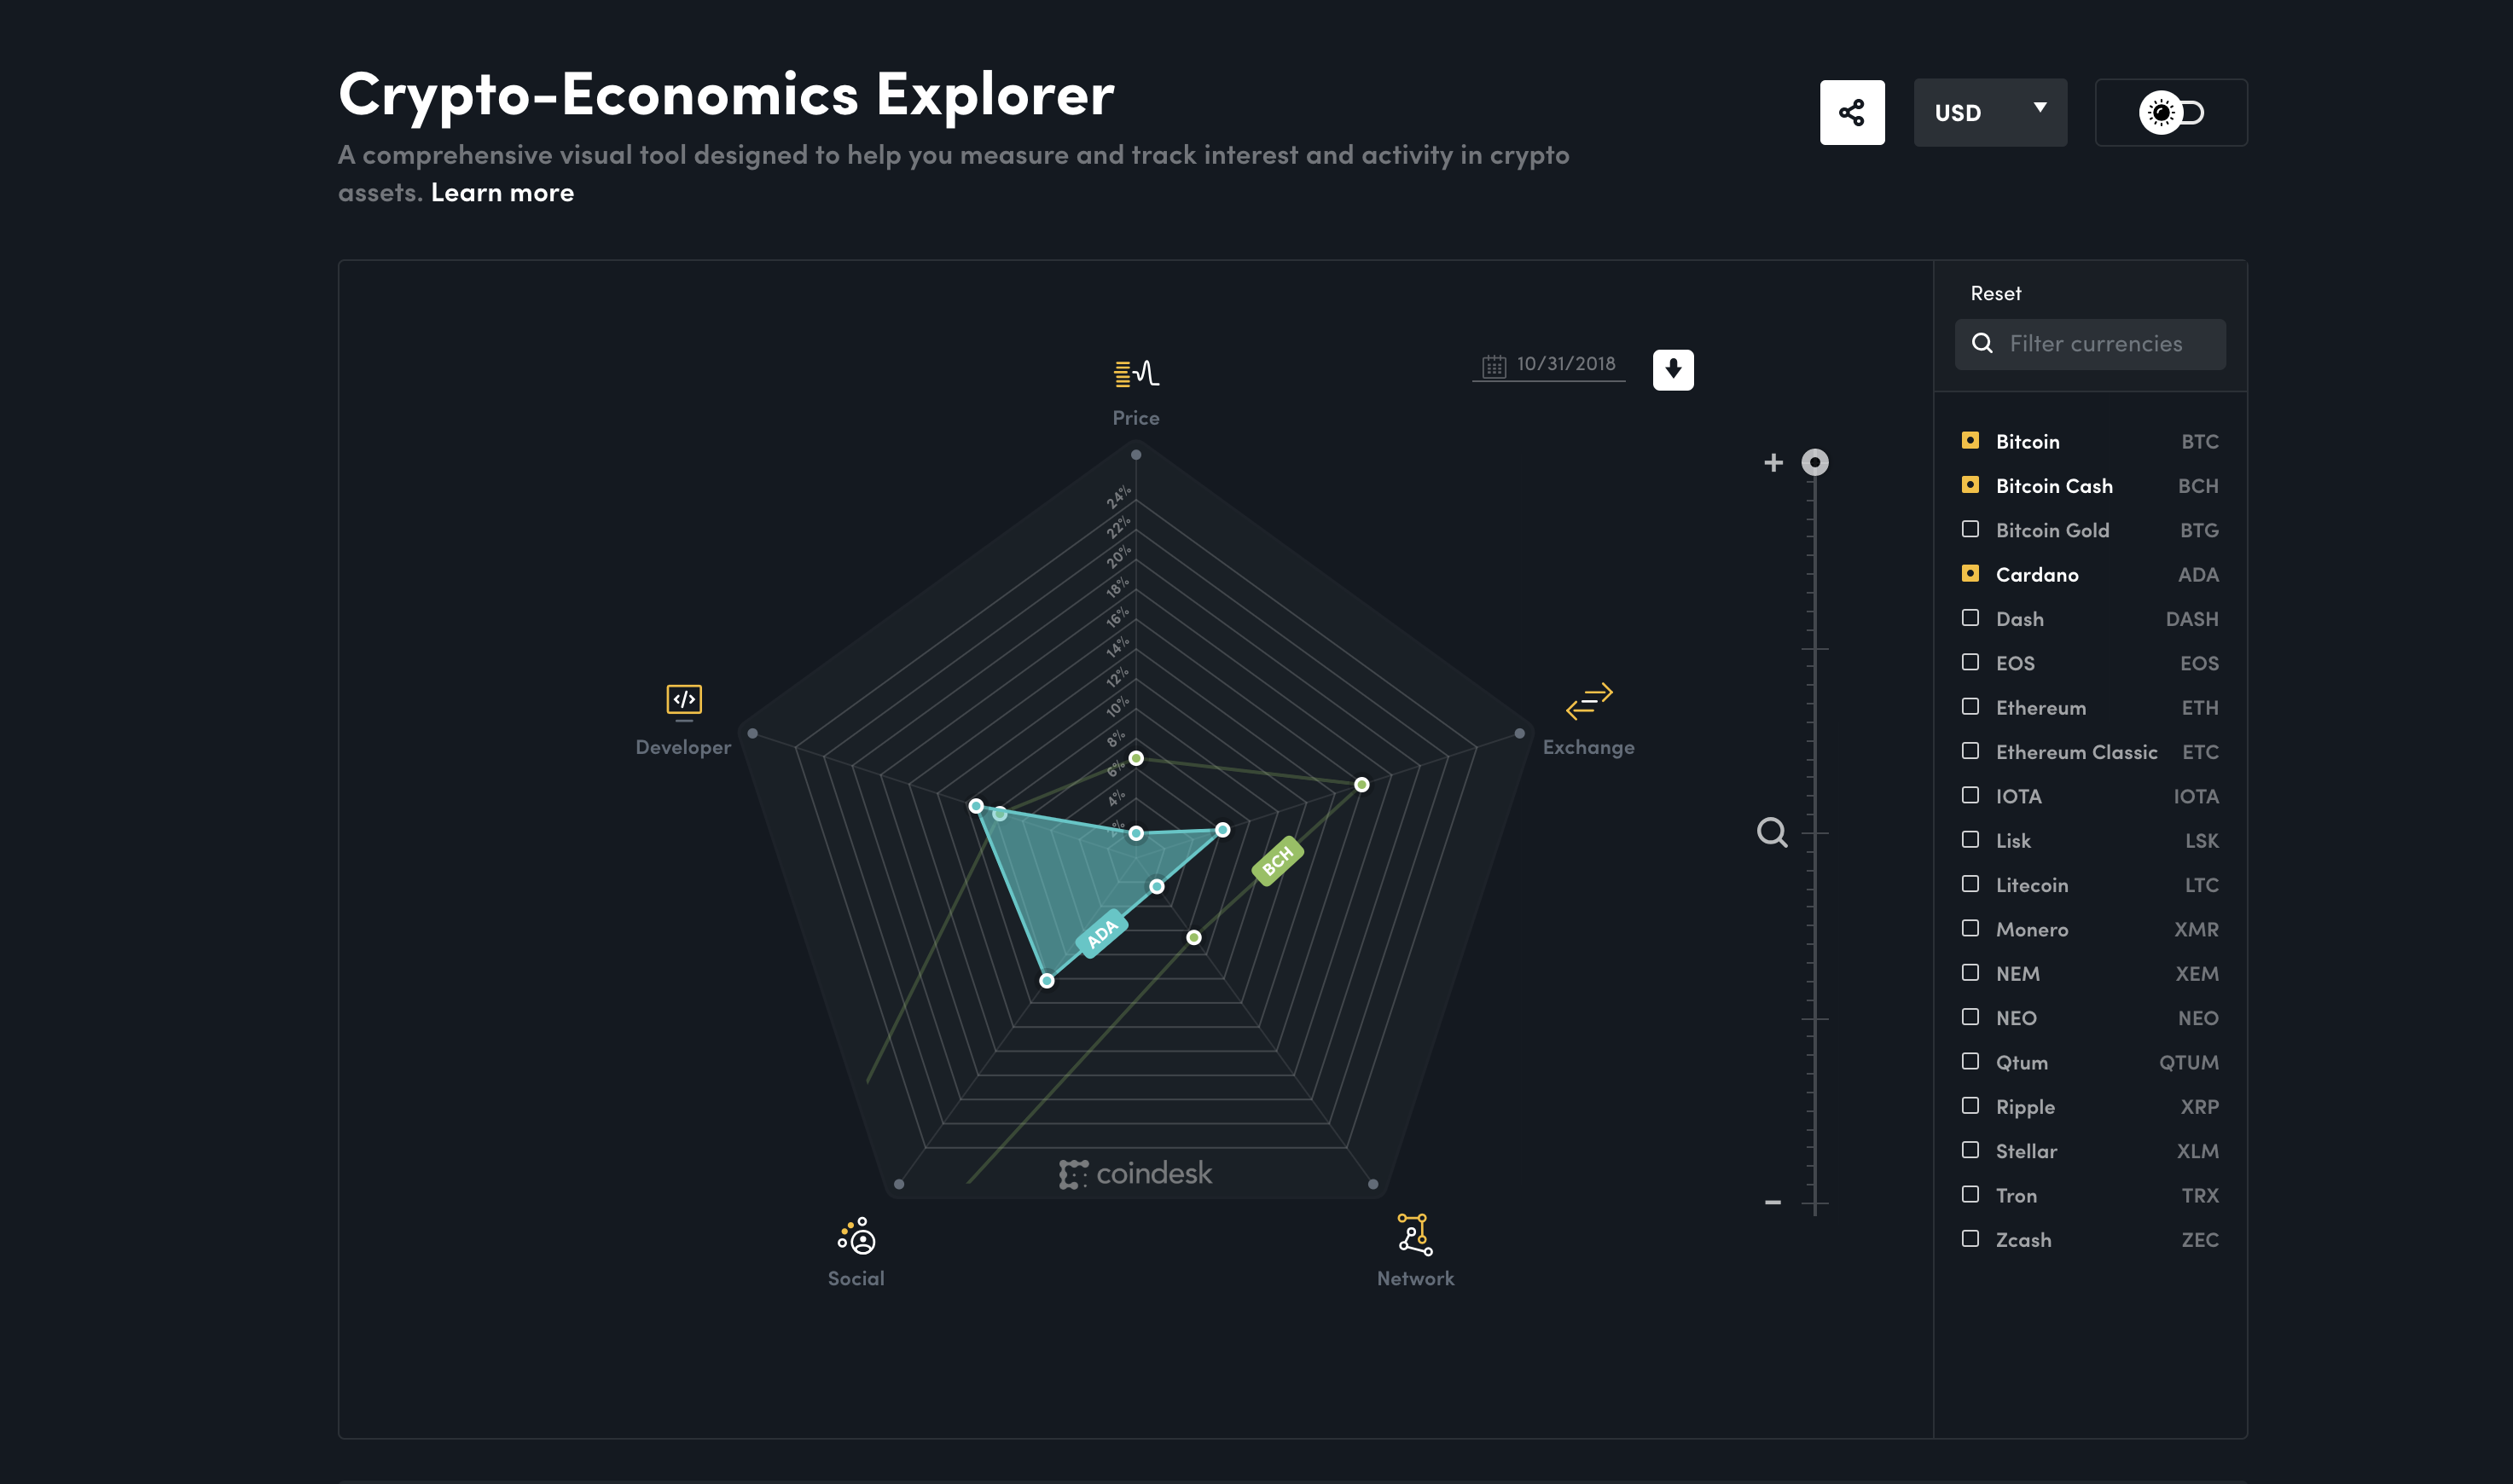 CoinDesk Launches the Crypto-Economics Explorer, A New Way to Visualize Crypto